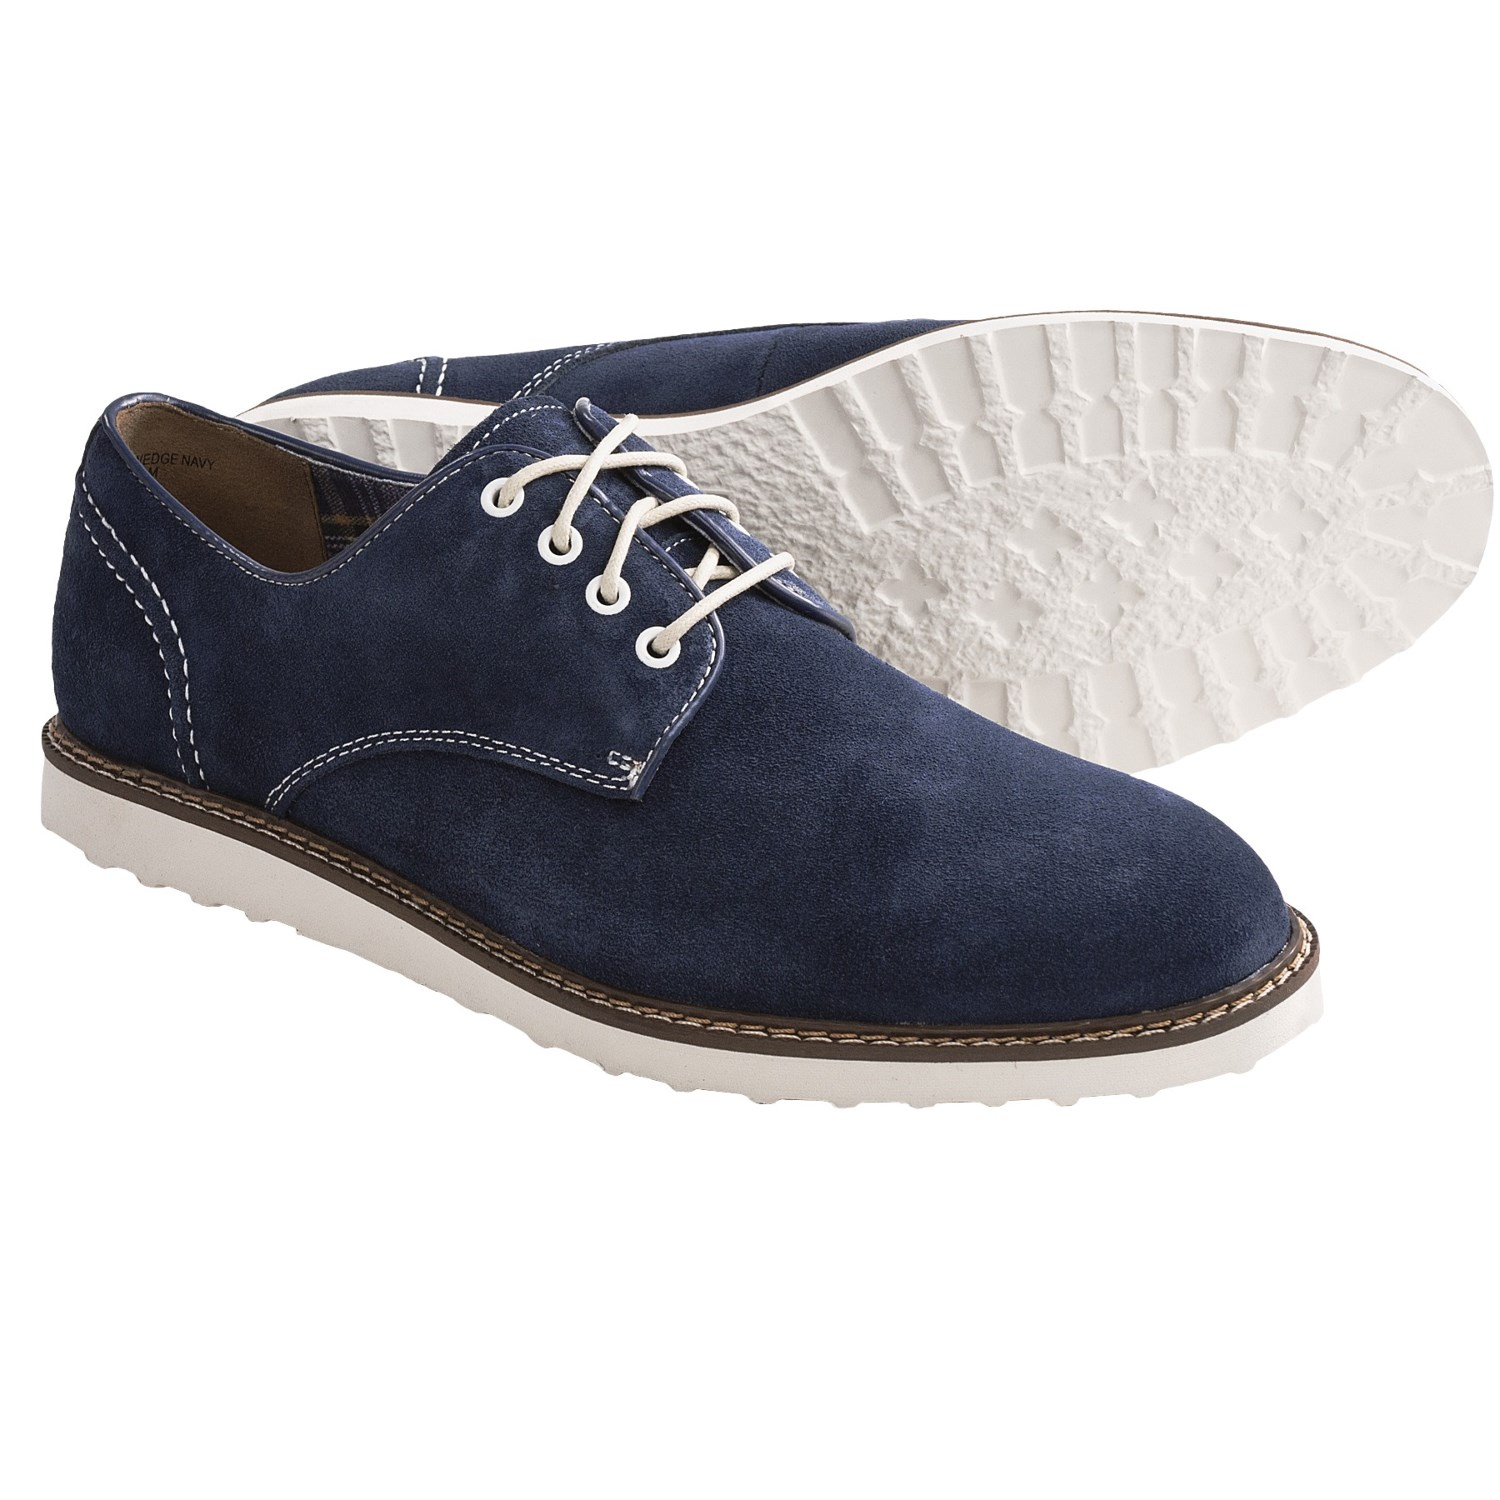 Hush Puppies Derby Wedge Shoes (For Men) 6519Y - Save 80%